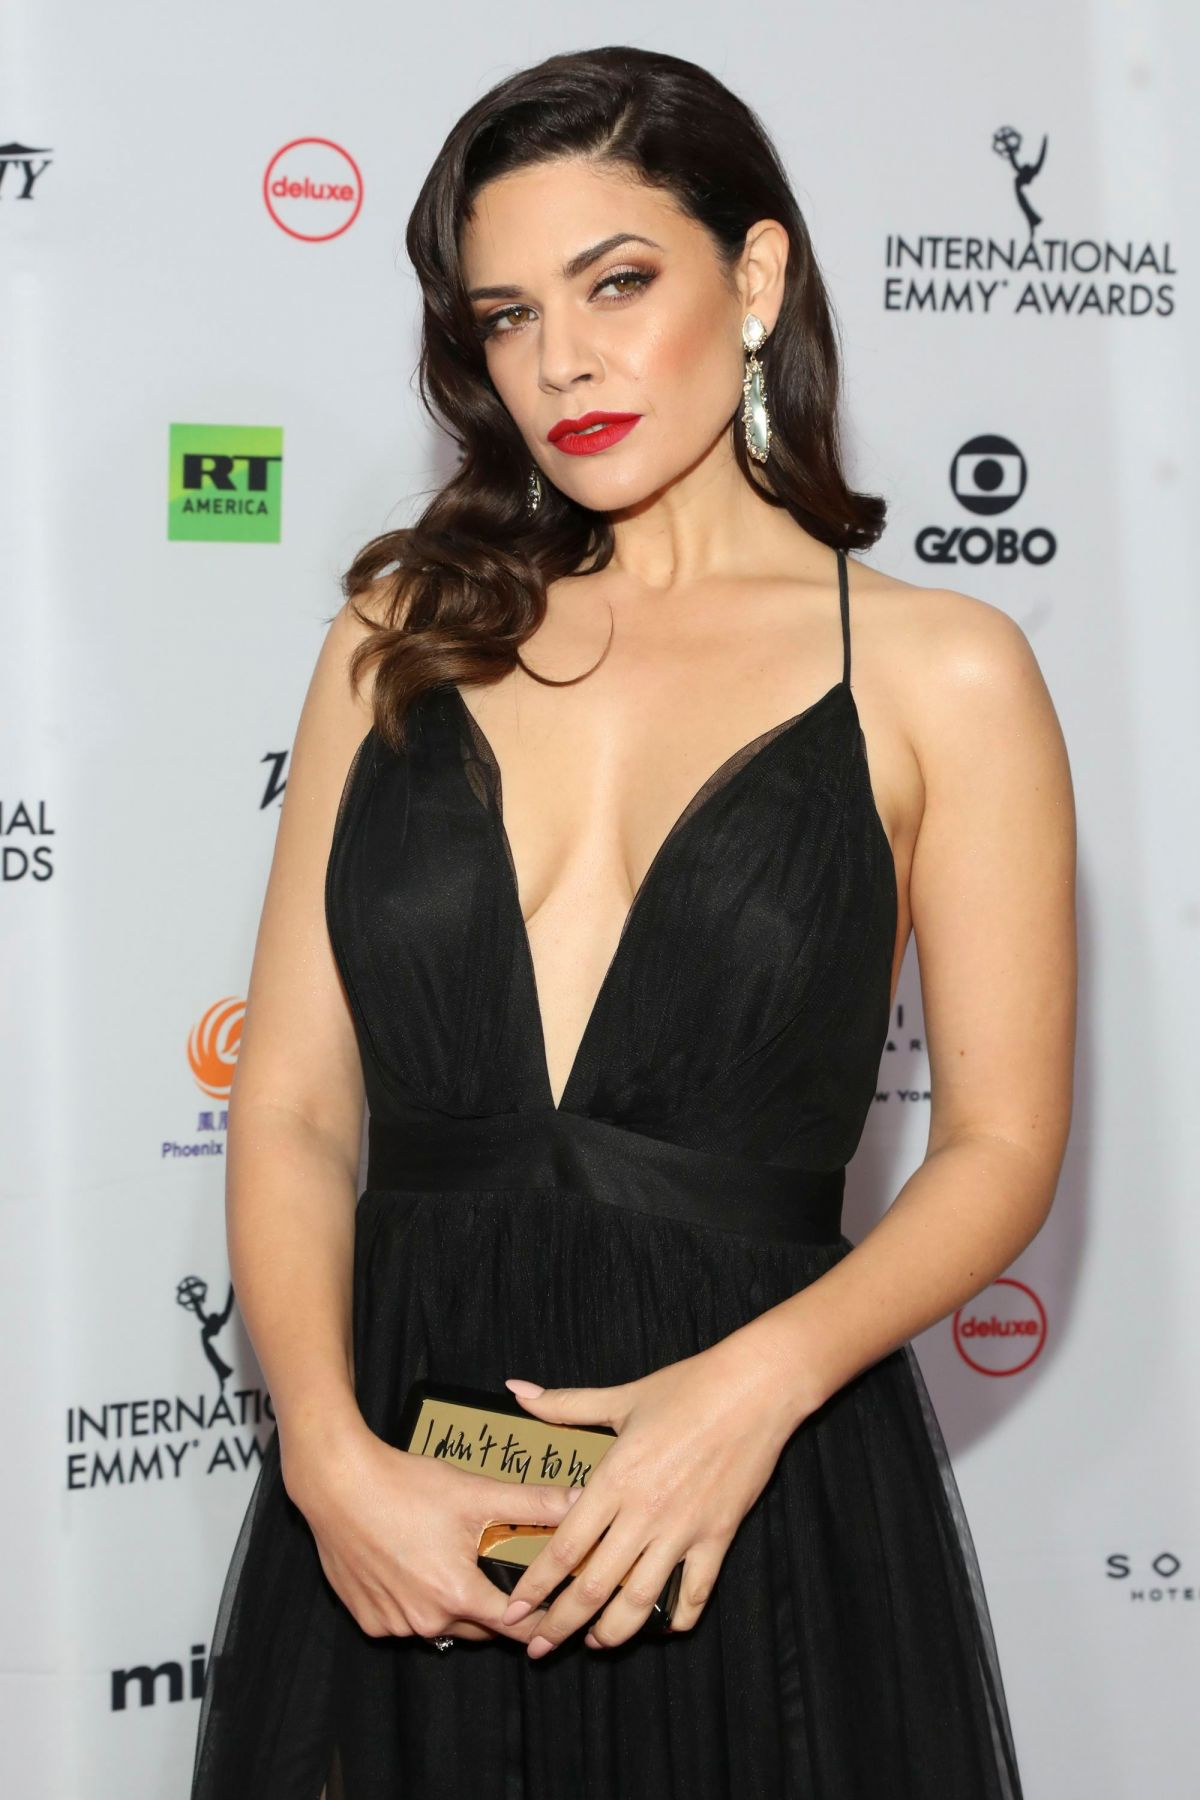 Angelica Celaya En Bikini angelica celaya at 46th international emmy awards gala, new